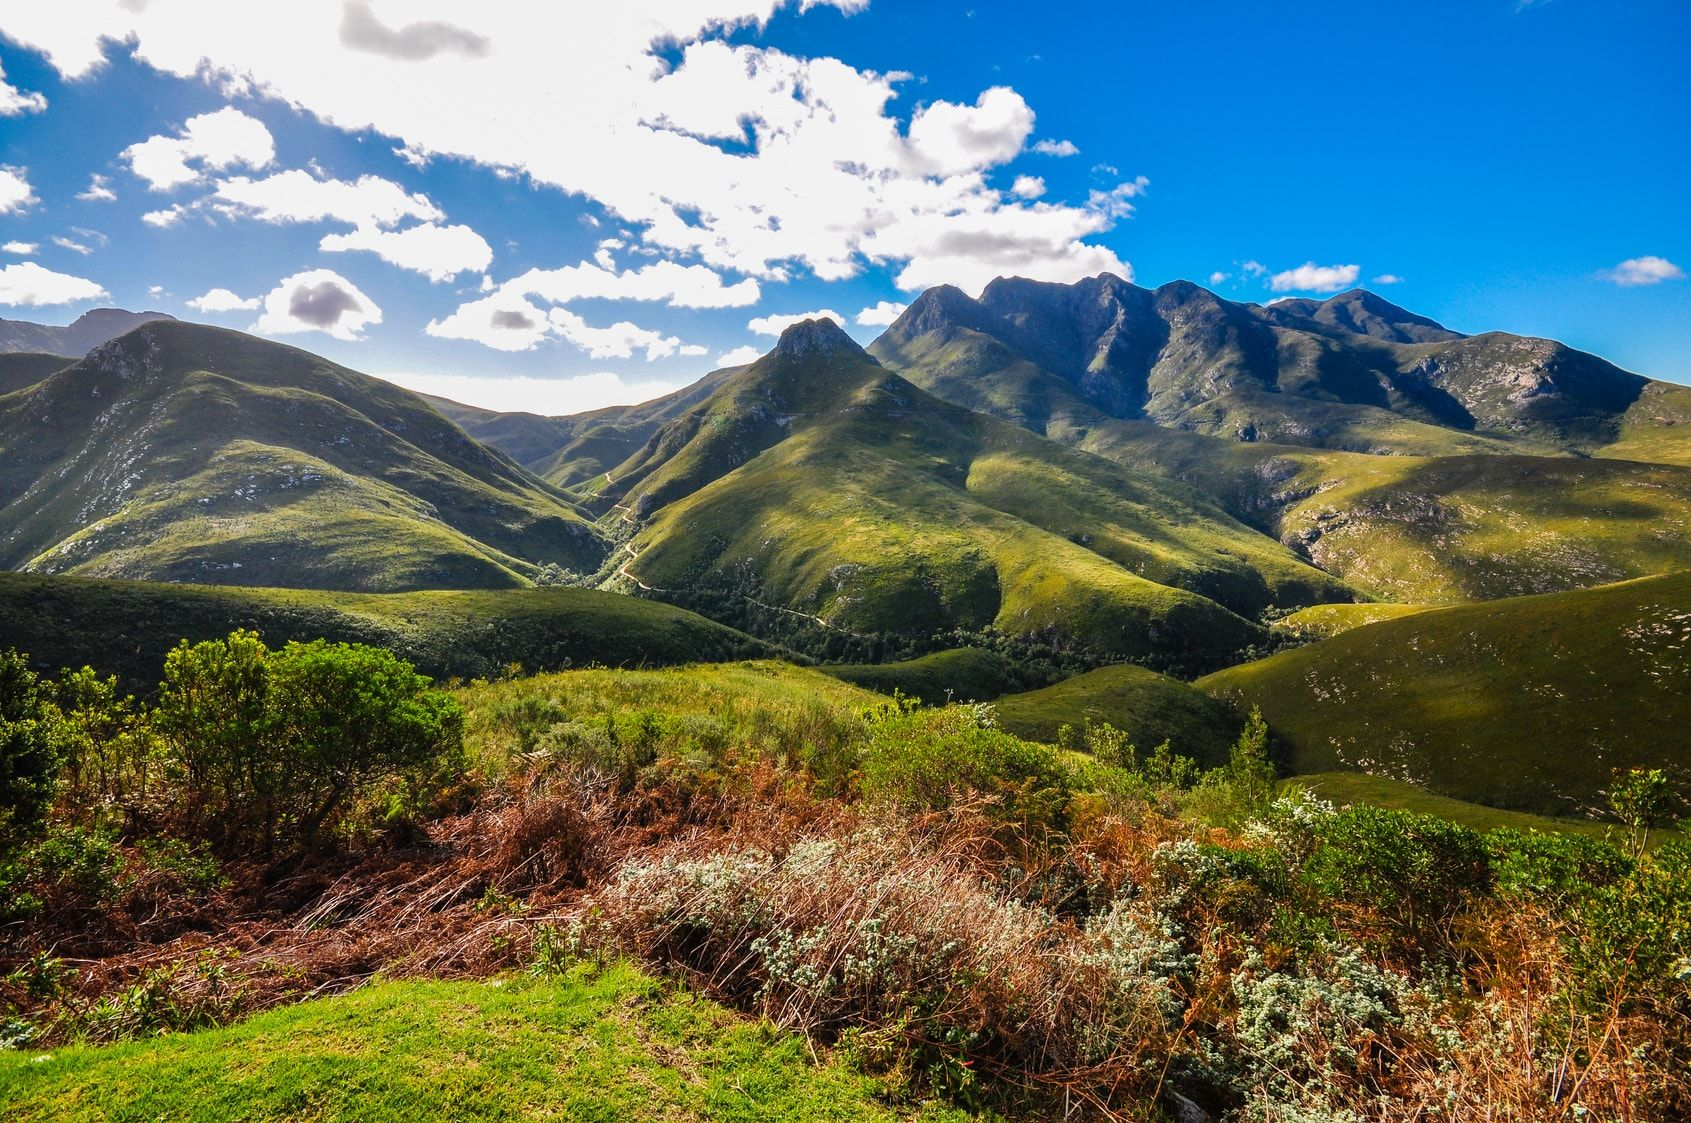 A Zest Guide to Touring South Africa's Garden Route